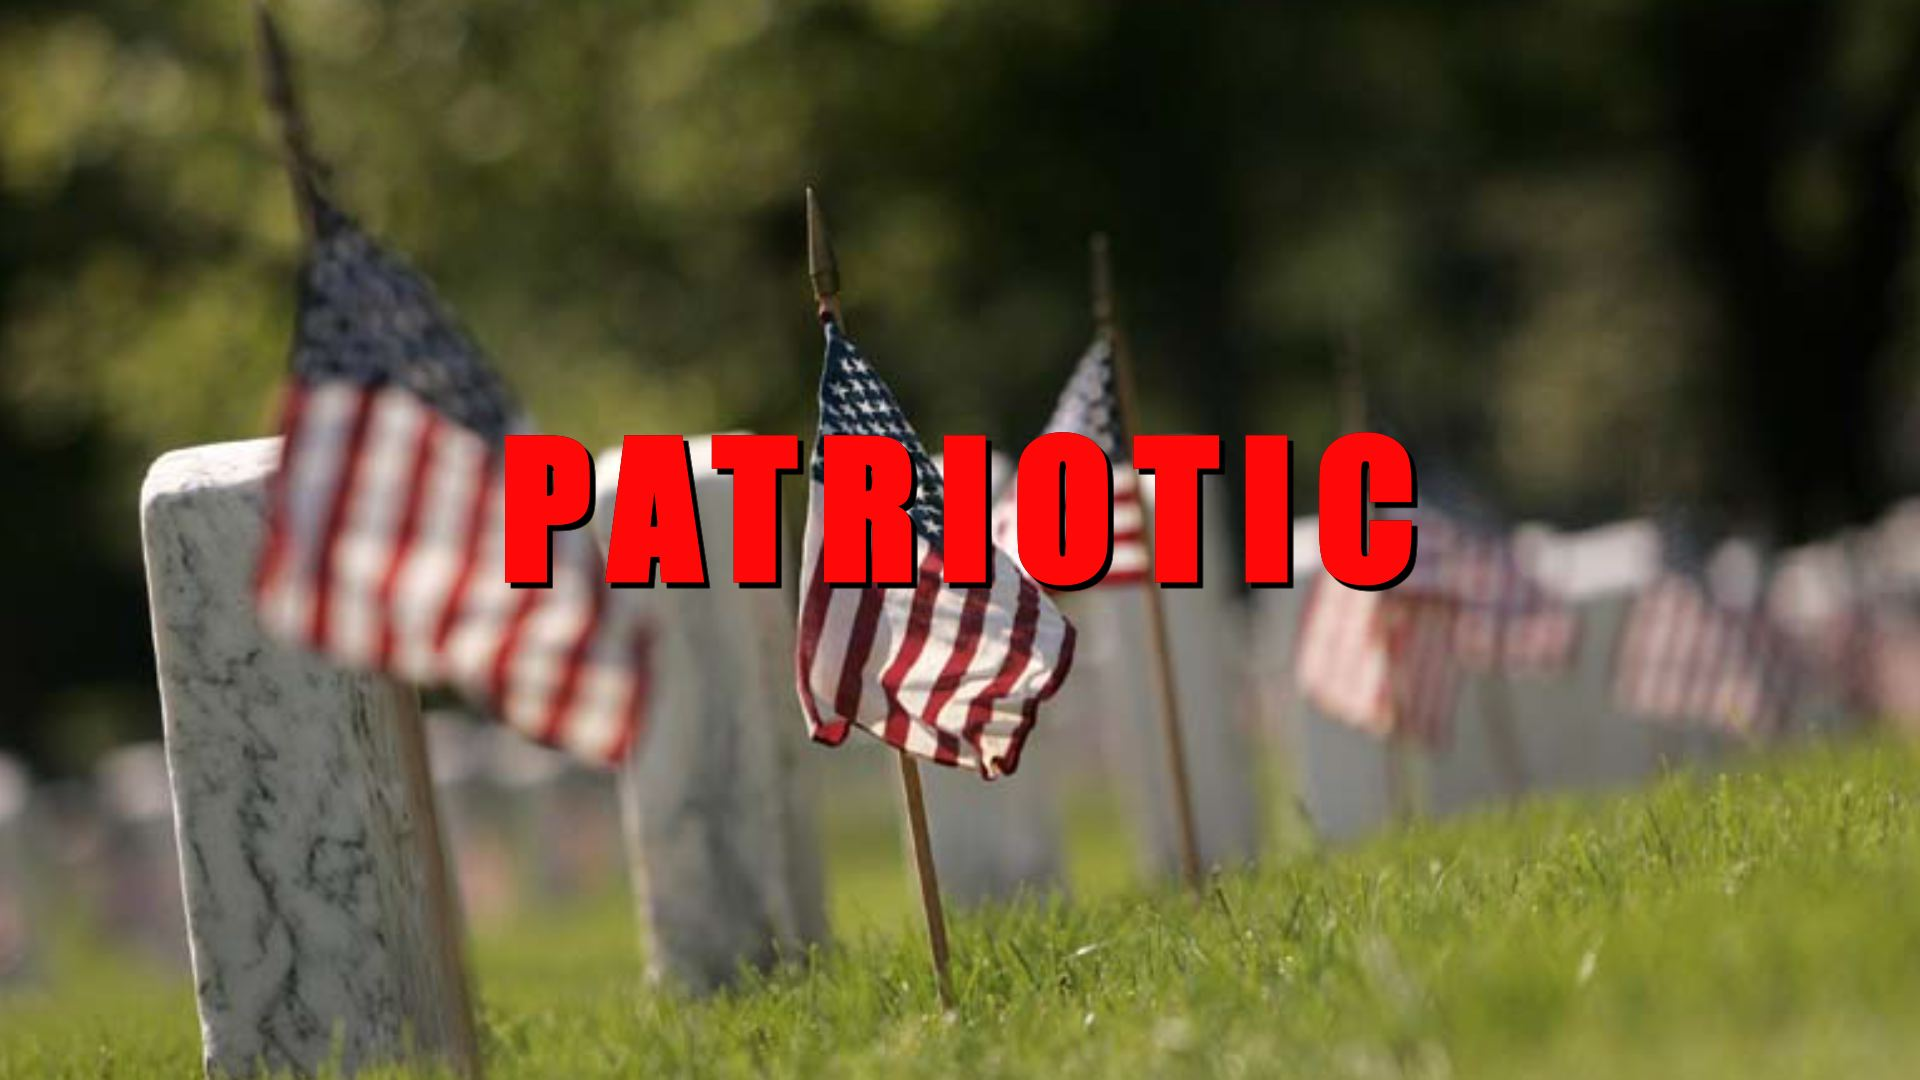 Patriotic: Music For Heroes